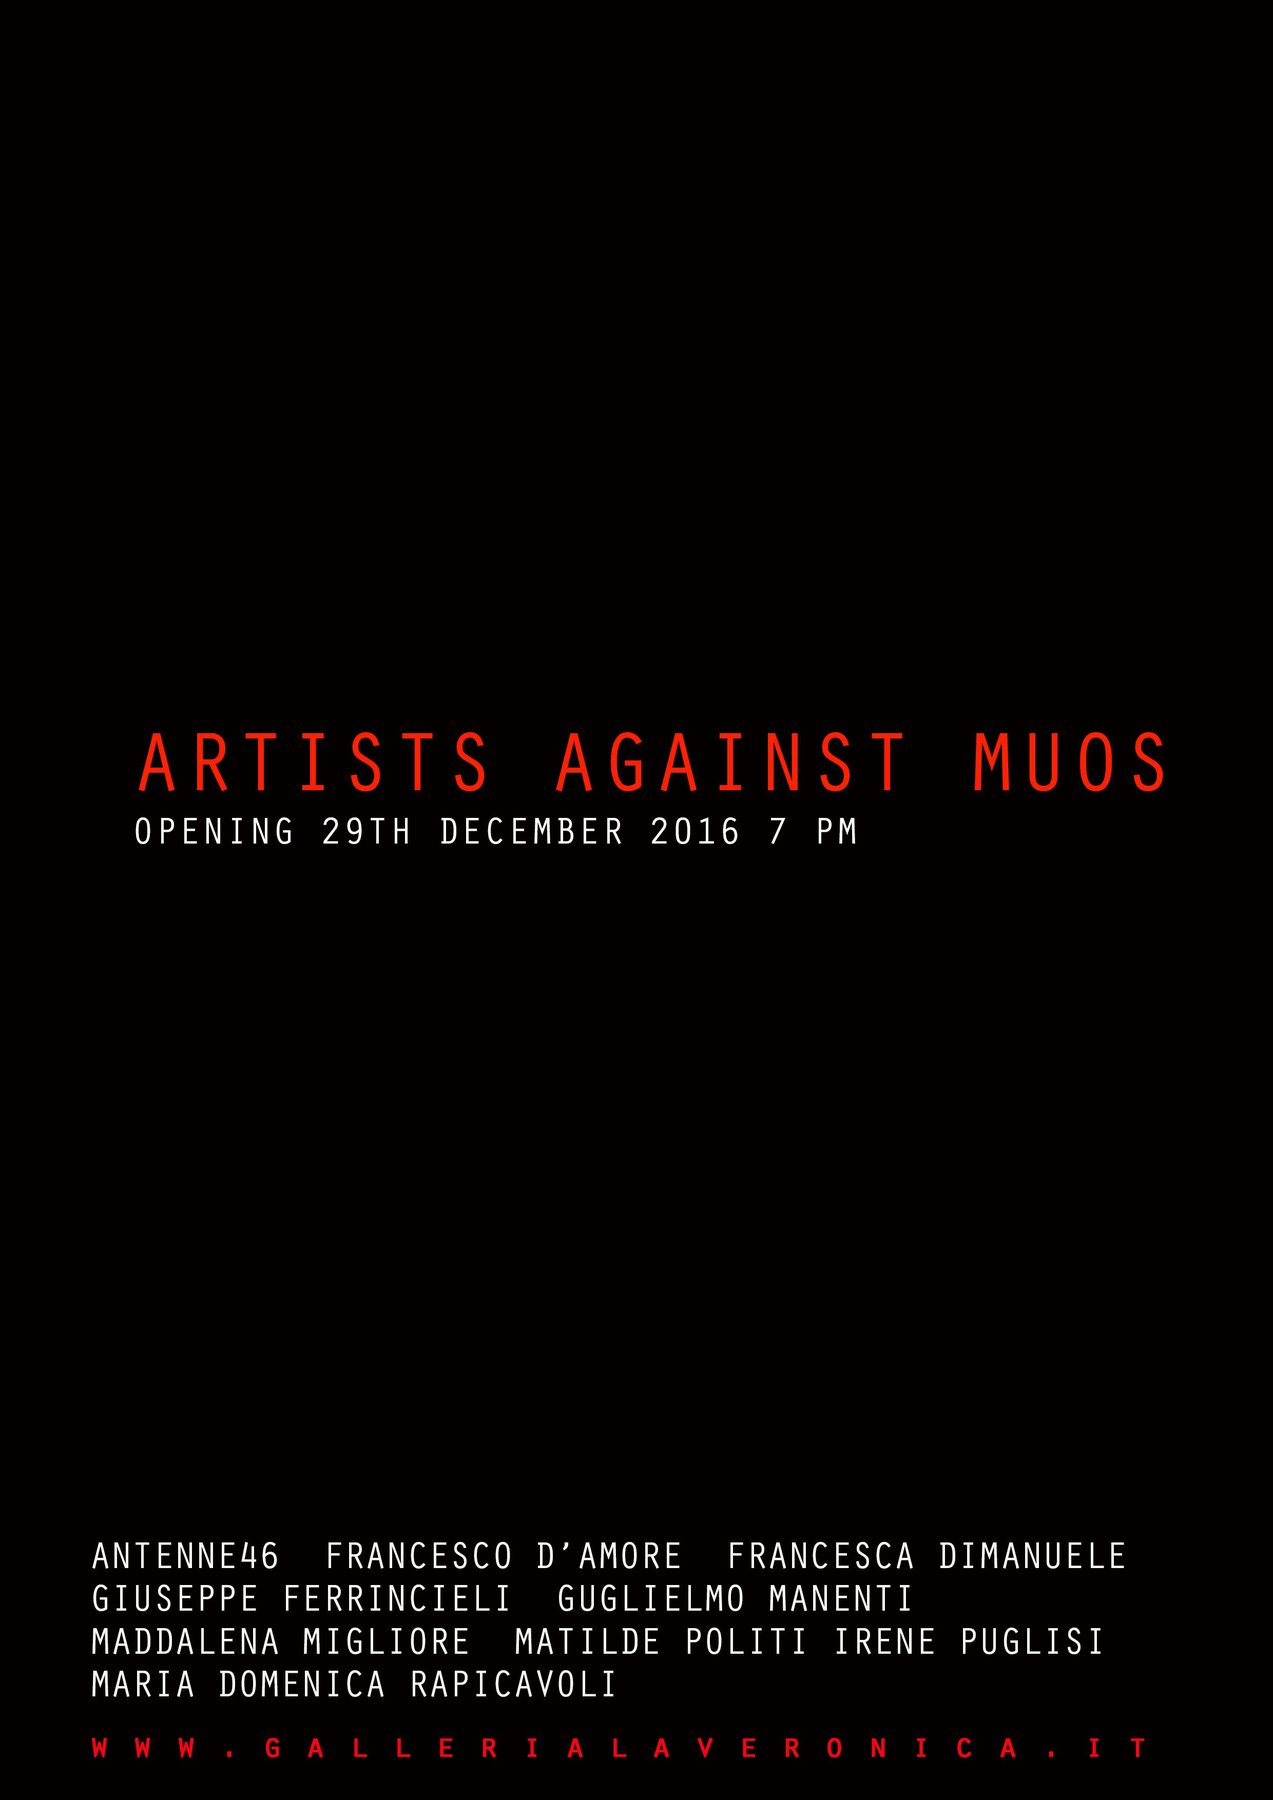 Artists Against MUOS